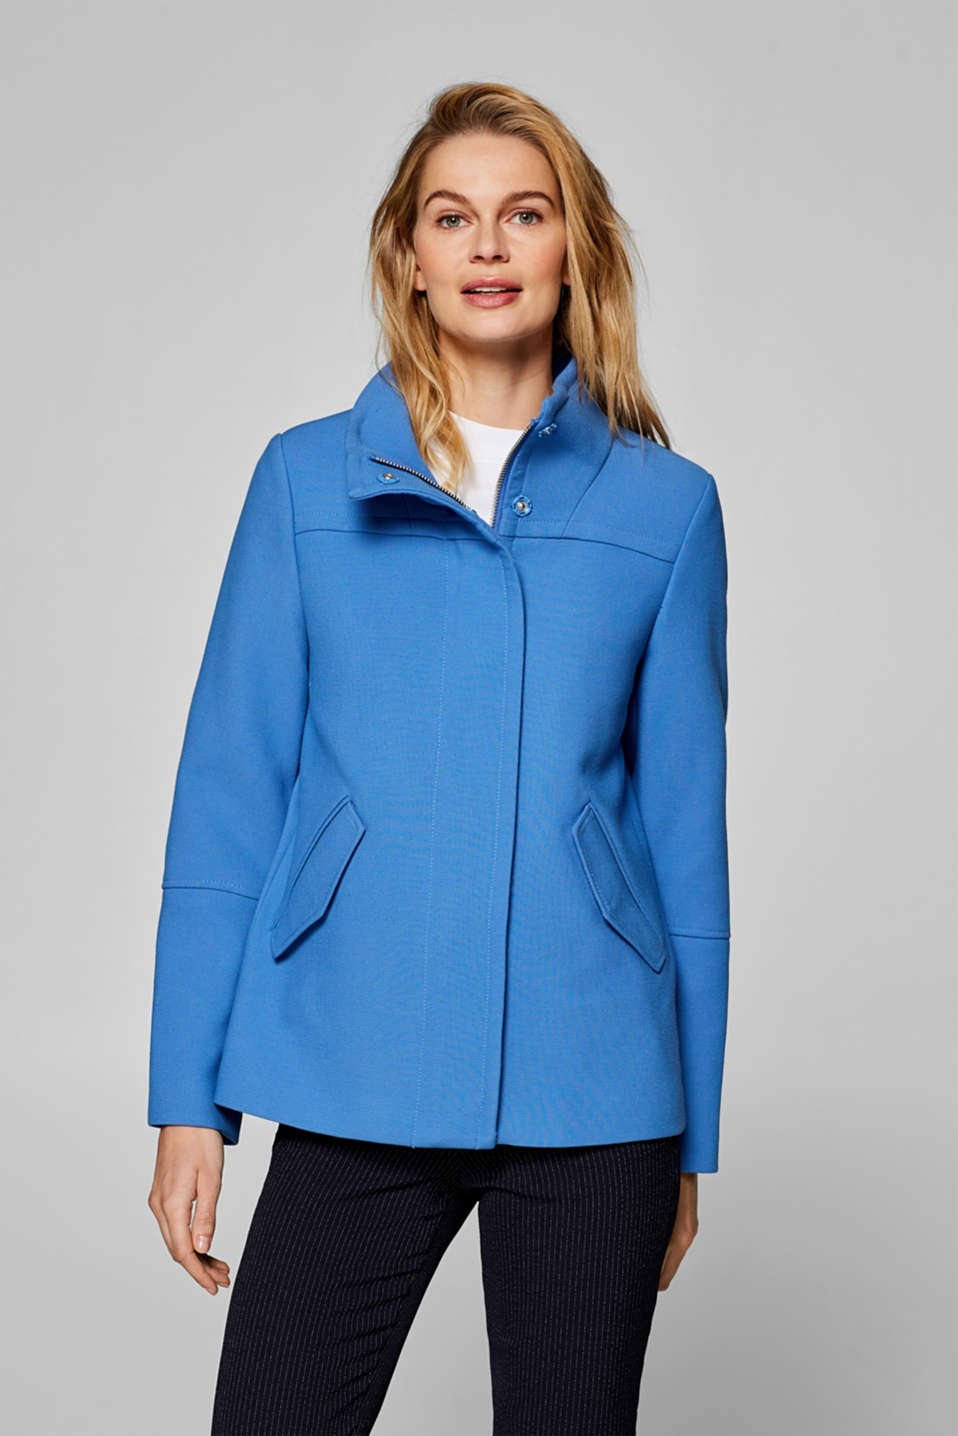 Esprit - Textured jacket with a percentage of stretch and a stand-up collar